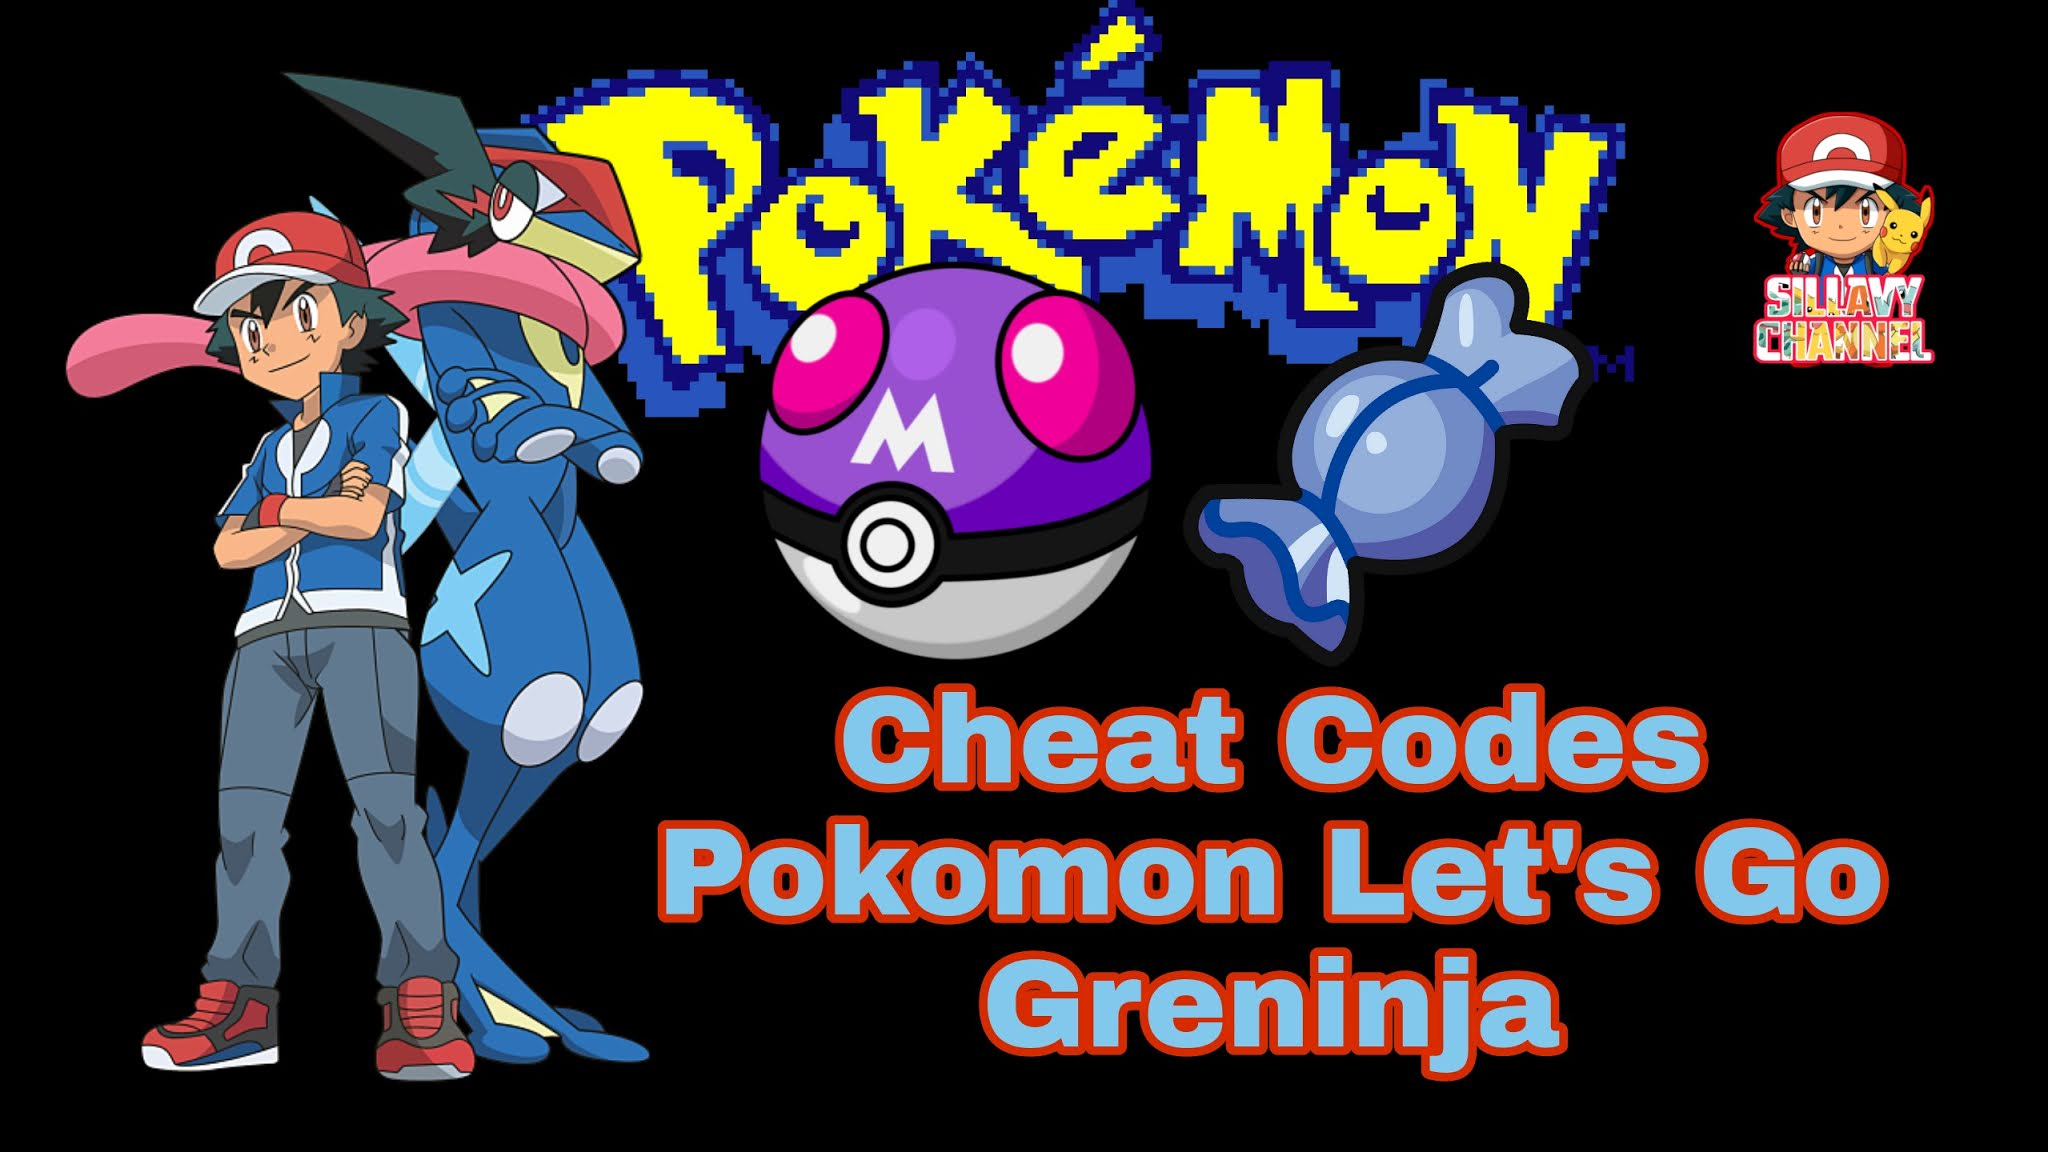 Cheat Codes Pokemon Let S Go Greninja Rare Candy Master Ball And More